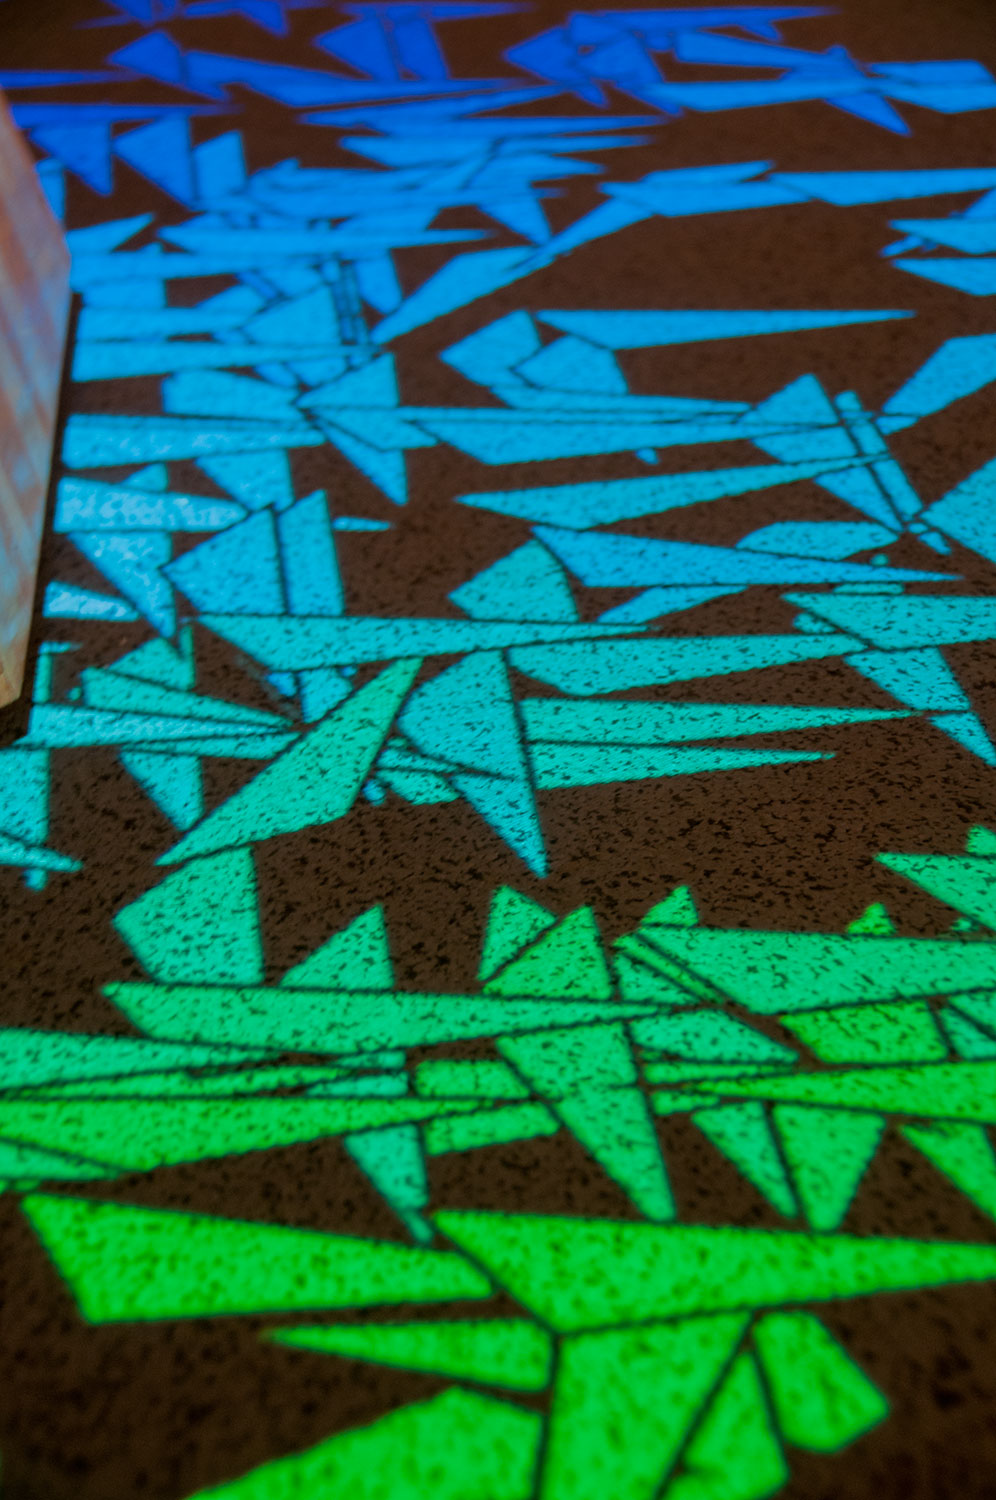 Mapping a projection to the floor was a means of presenting users with a map of colors which coincide with the this interactive sculpture.